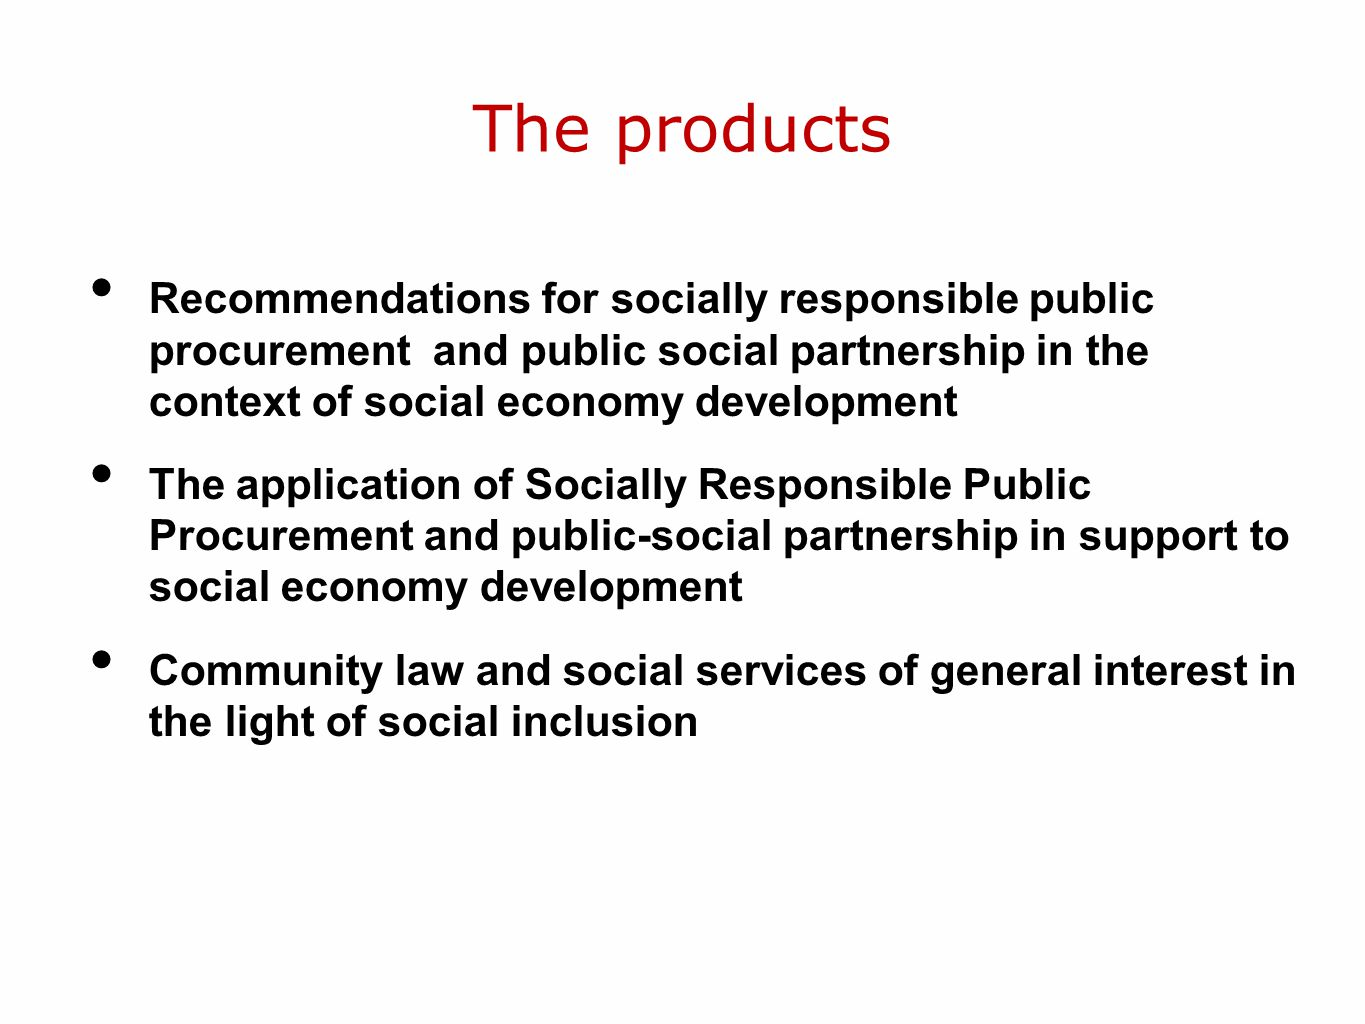 The products Recommendations for socially responsible public procurement and public social partnership in the context of social economy development The application of Socially Responsible Public Procurement and public-social partnership in support to social economy development Community law and social services of general interest in the light of social inclusion